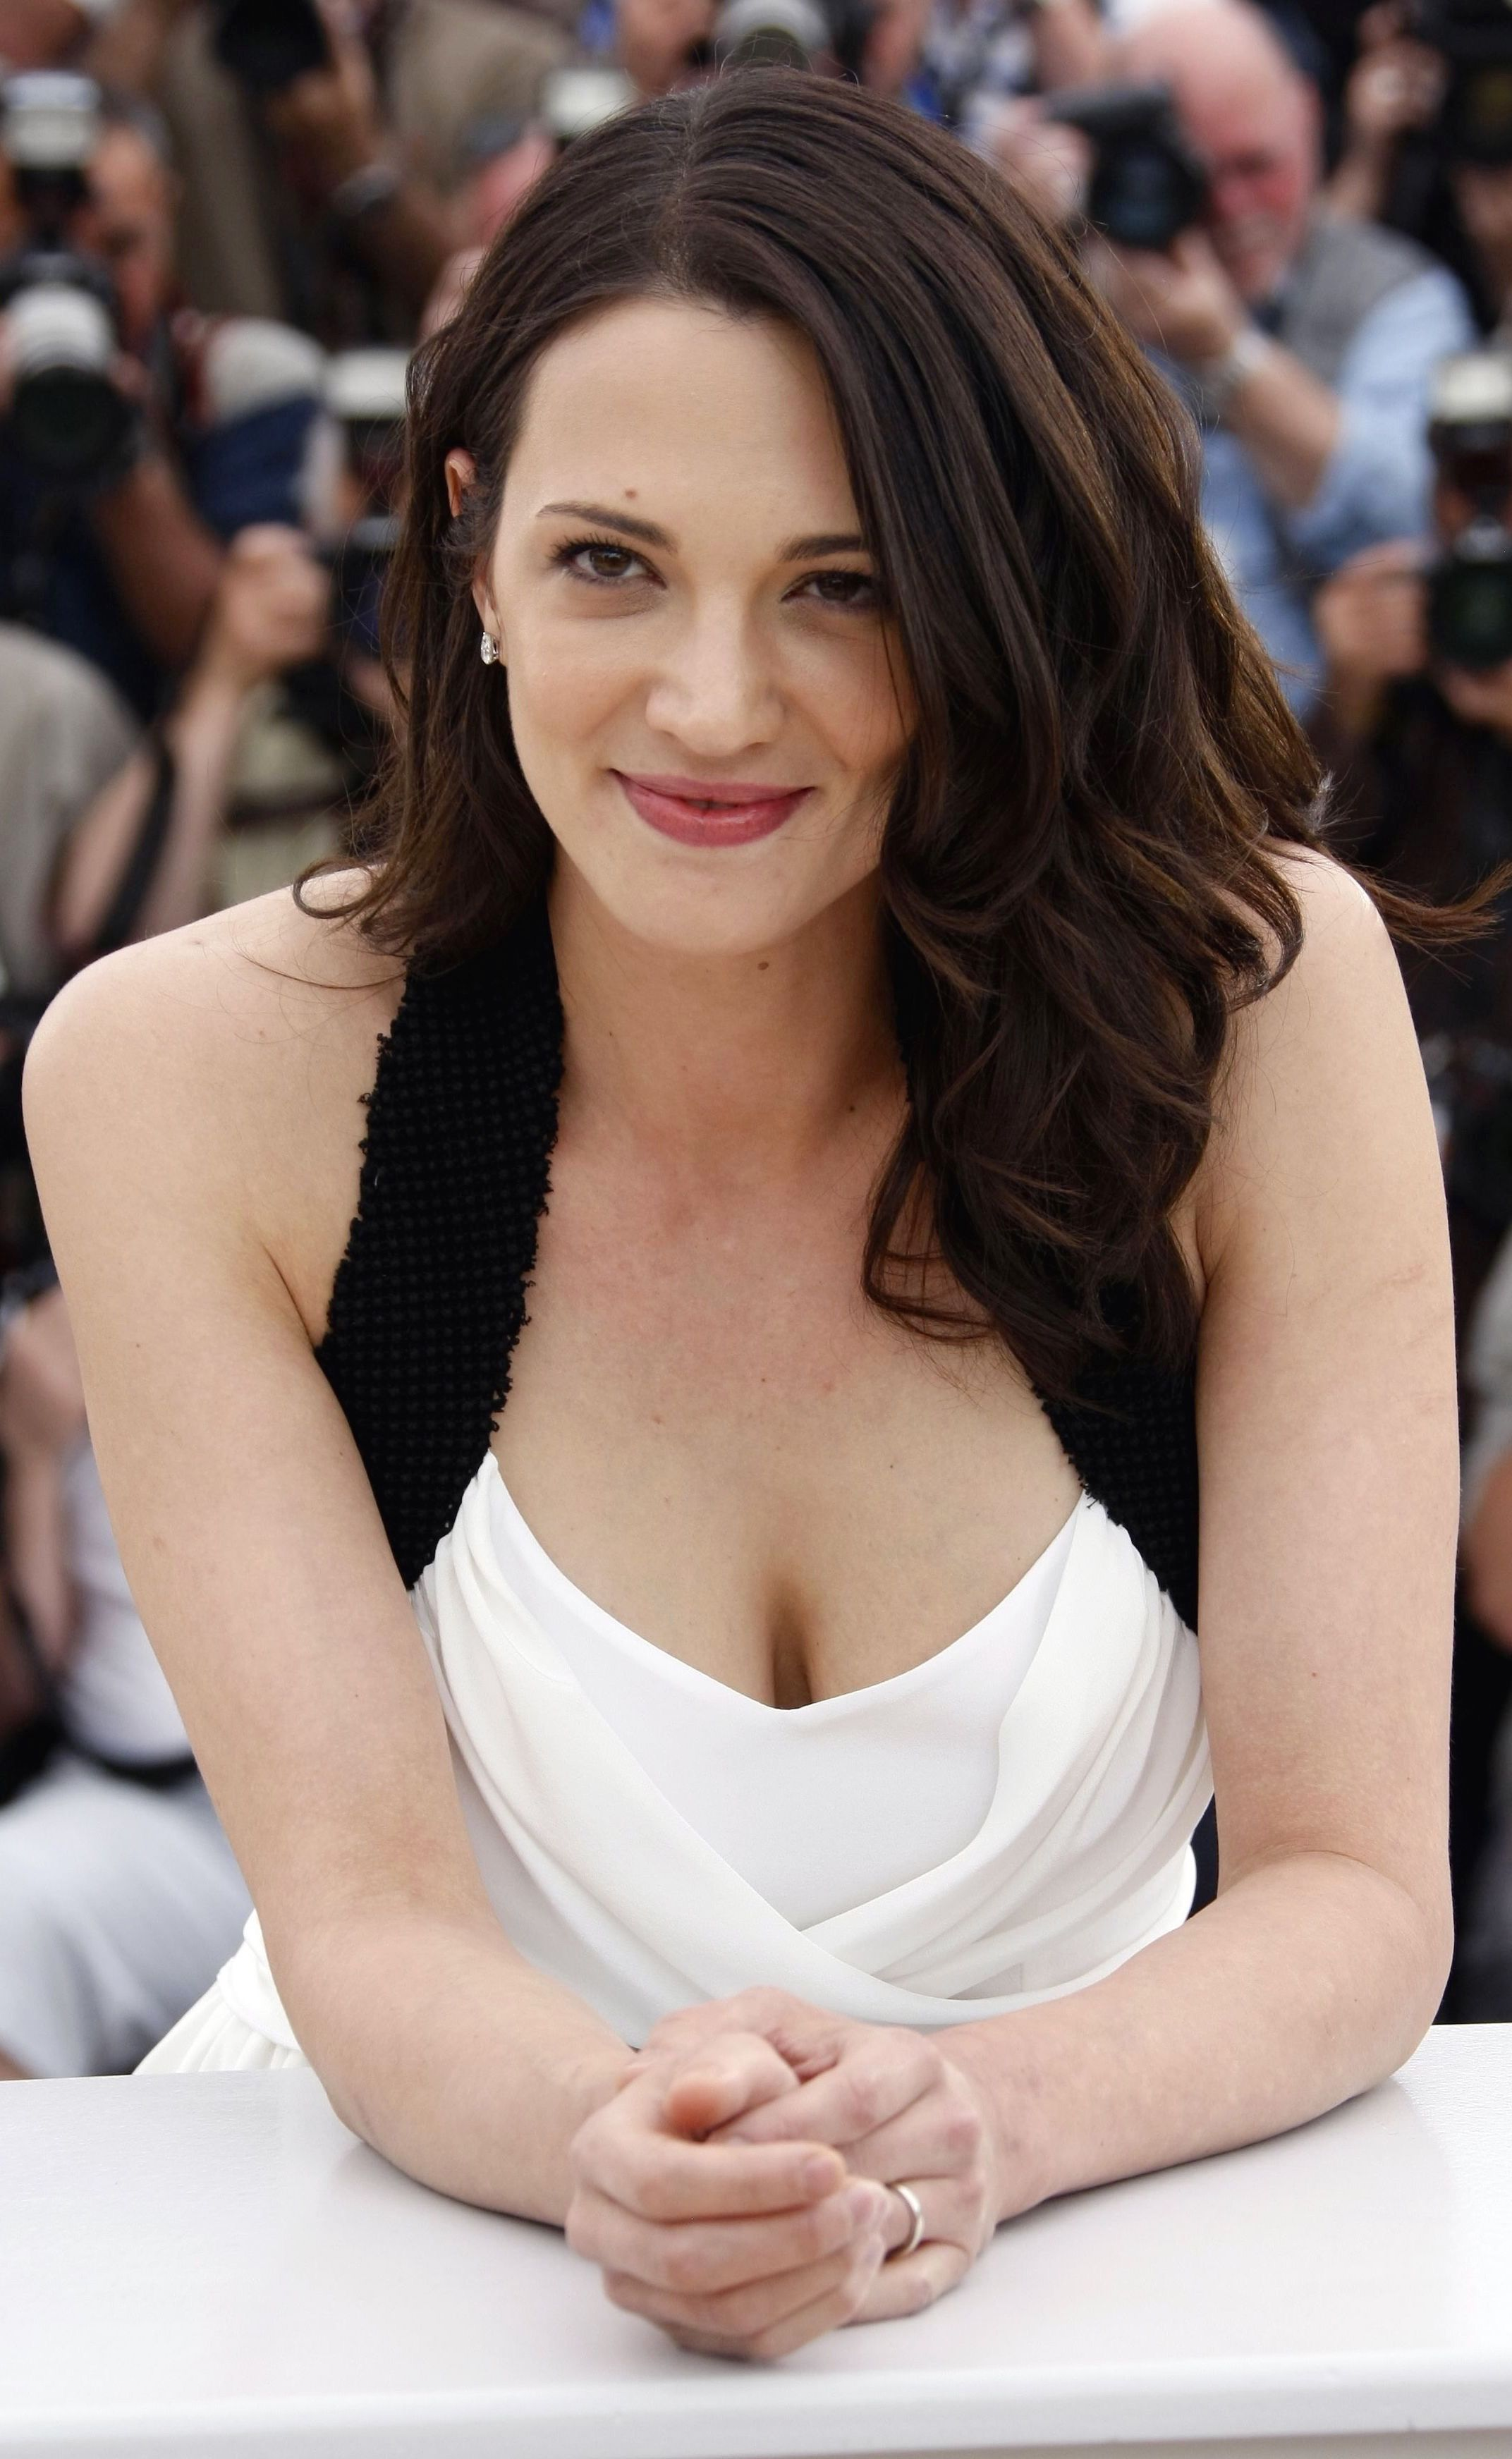 Asia Argento (born 1975) nudes (65 foto and video), Topless, Hot, Feet, braless 2015